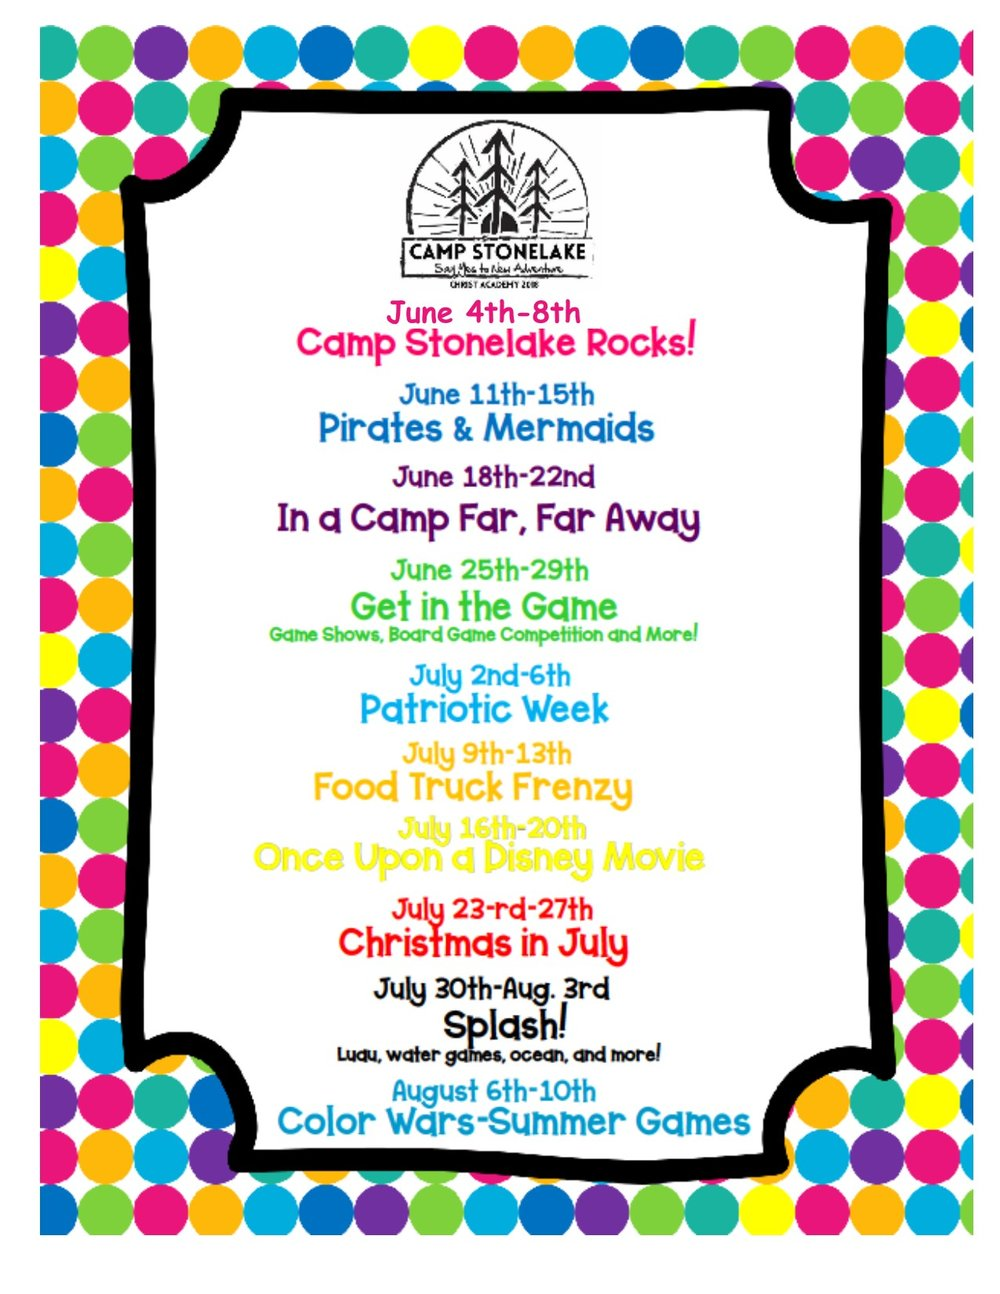 Camp Stonelake Wichita Falls TX 2018 Camp Themes.jpg